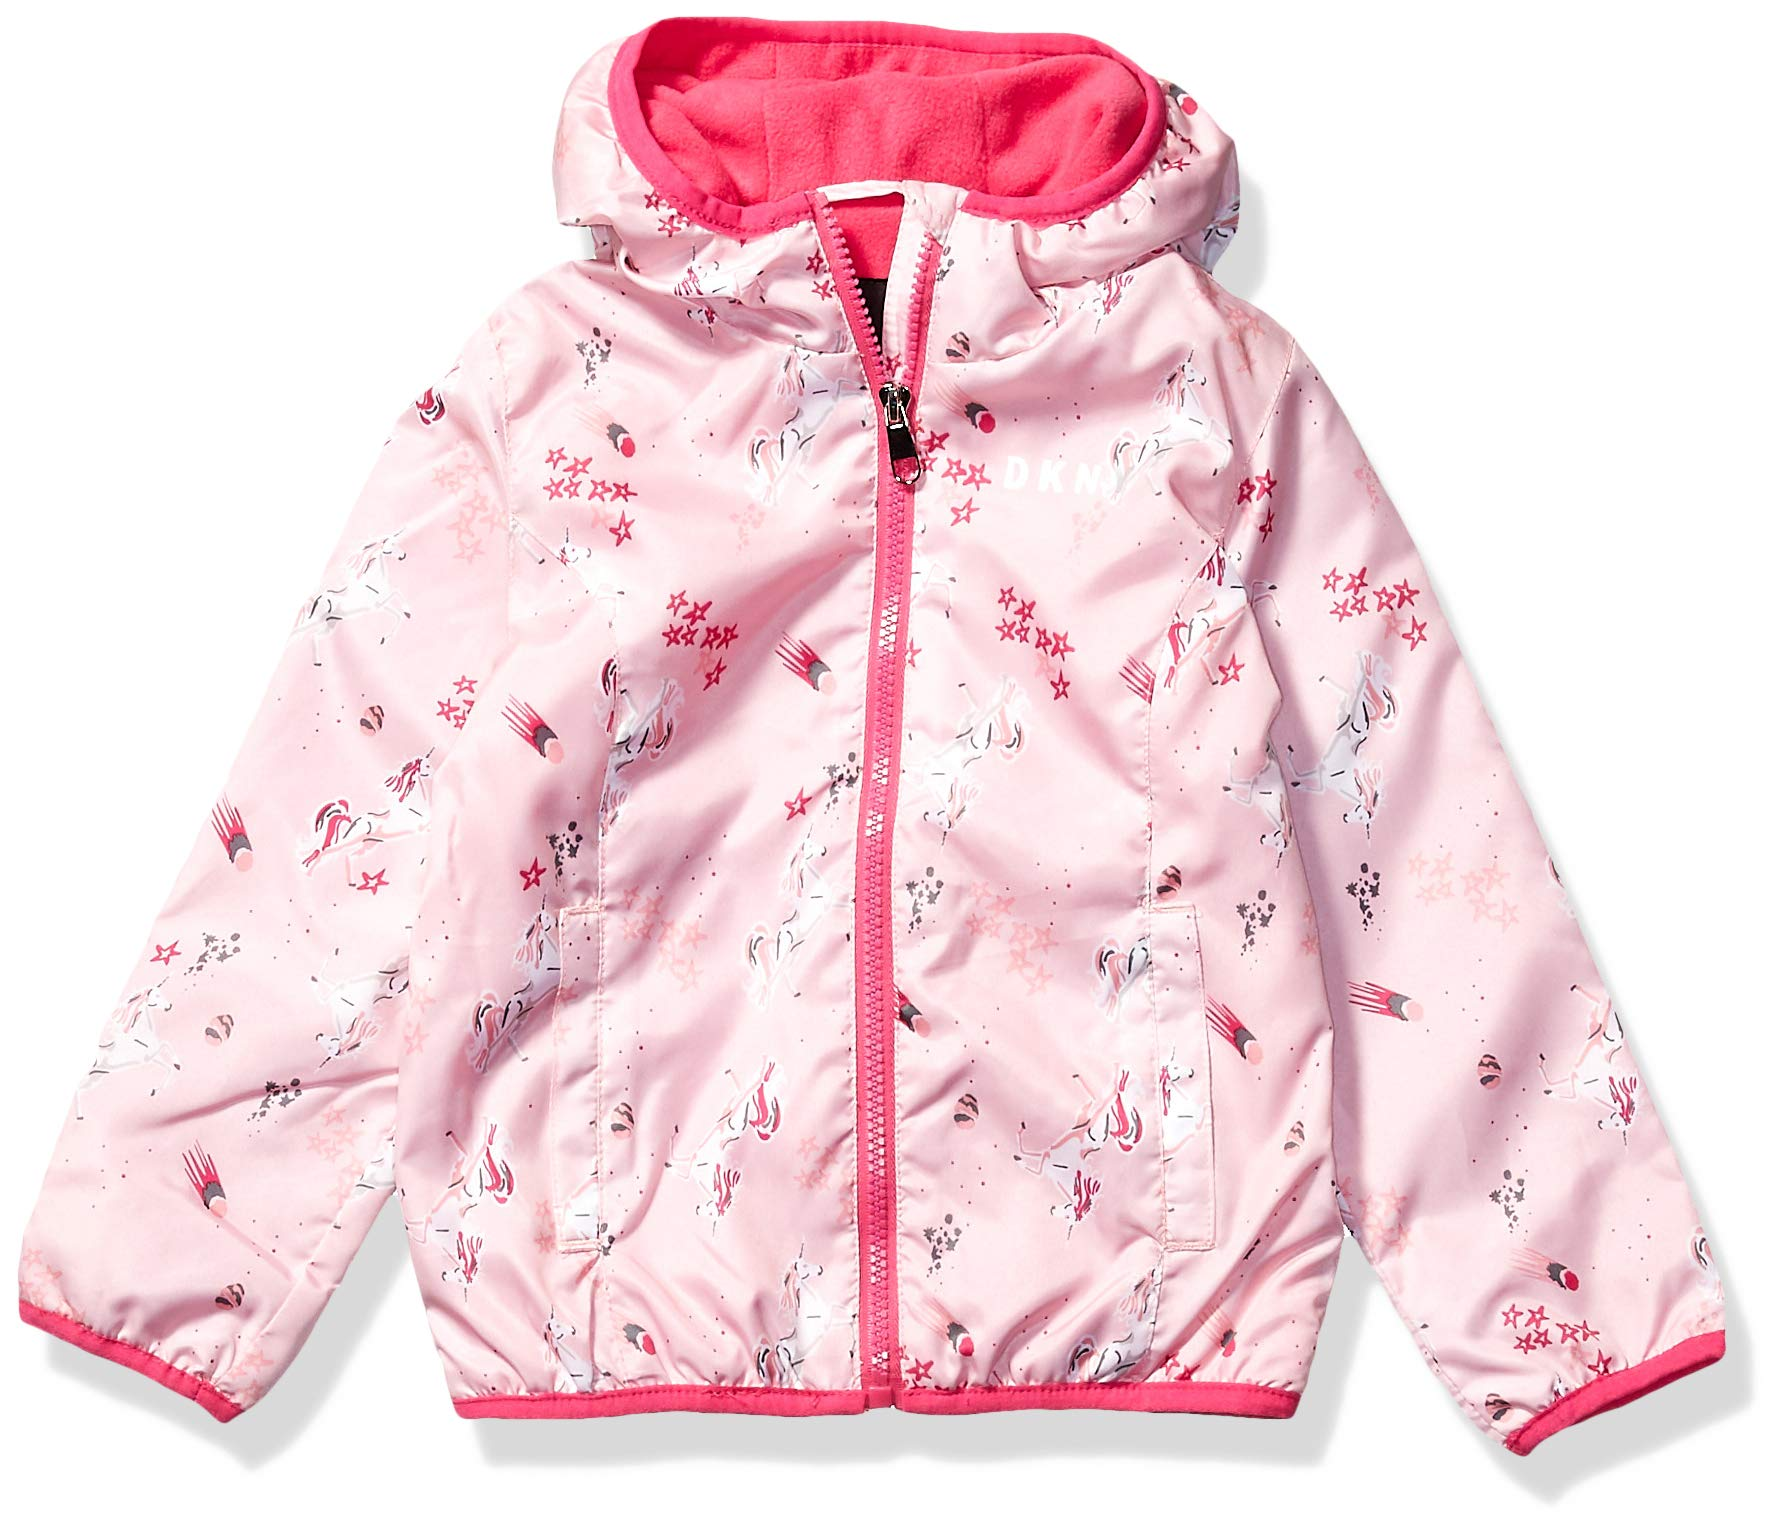 DKNY Girls' Little Midweight Jacket, Printed Baby Pink, 6X by DKNY